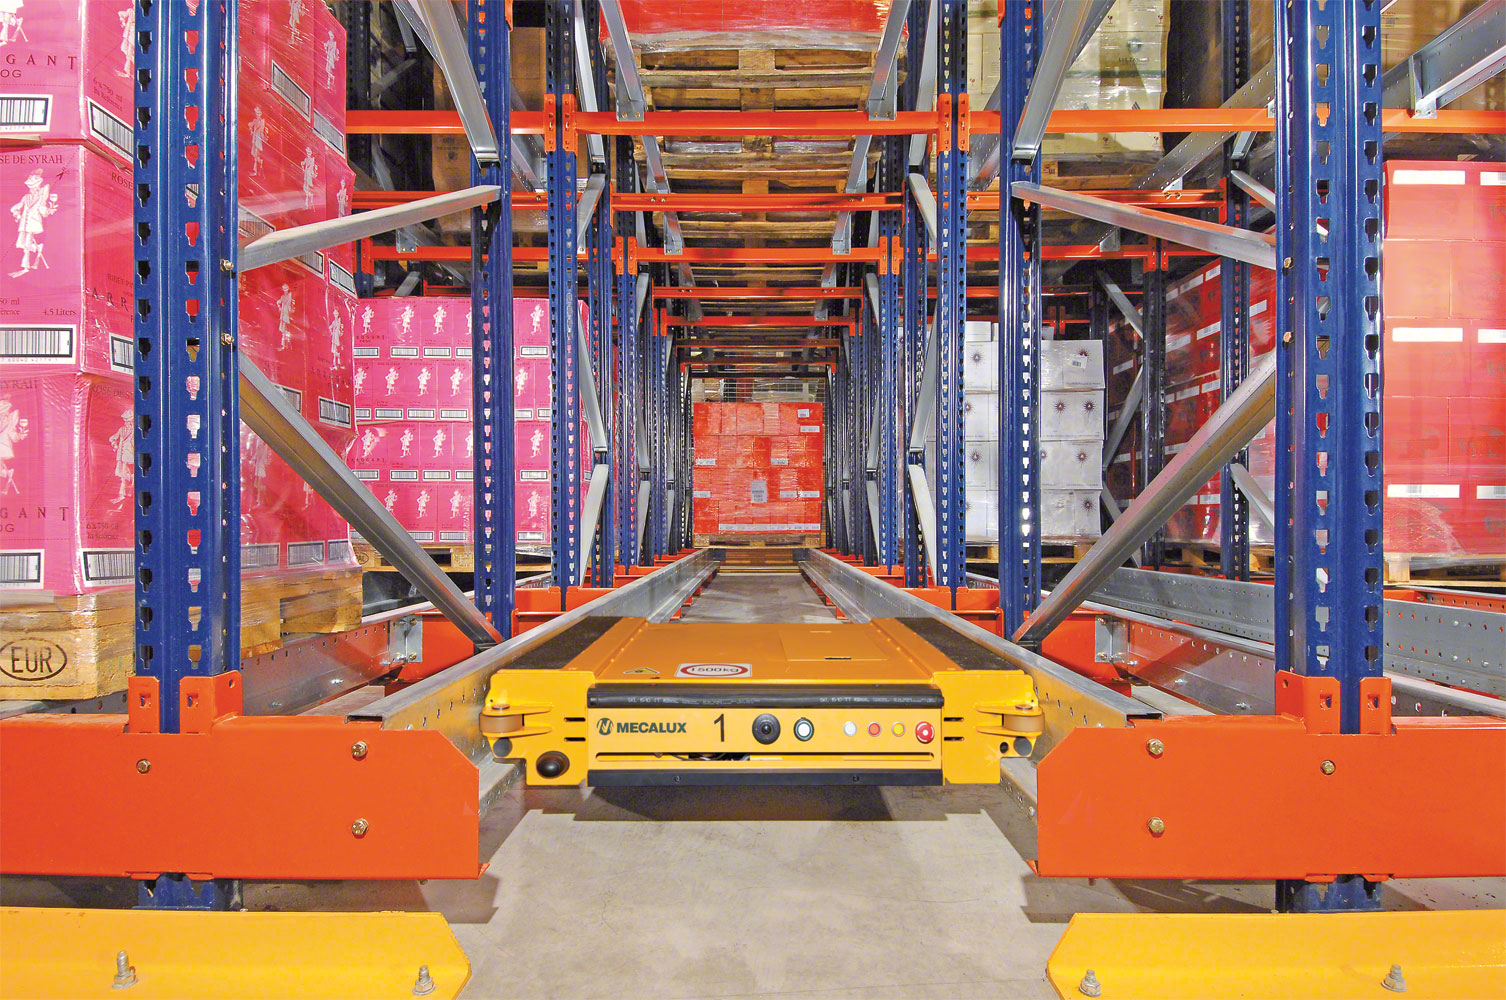 Pallet Shuttle in motion to perform an unloading operation